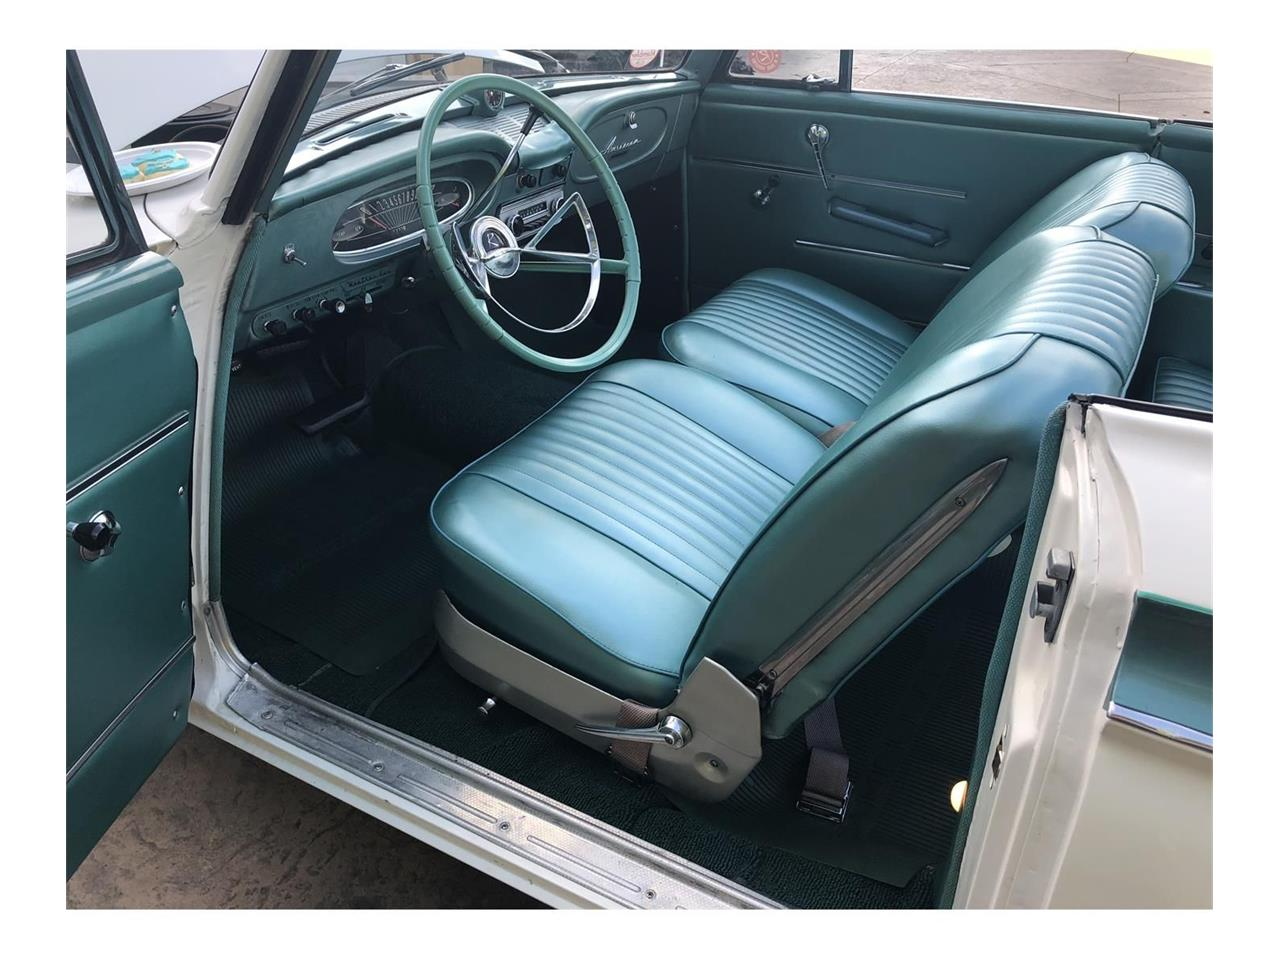 Large Picture of '62 Rambler American located in Minnesota - $18,500.00 - PYWM